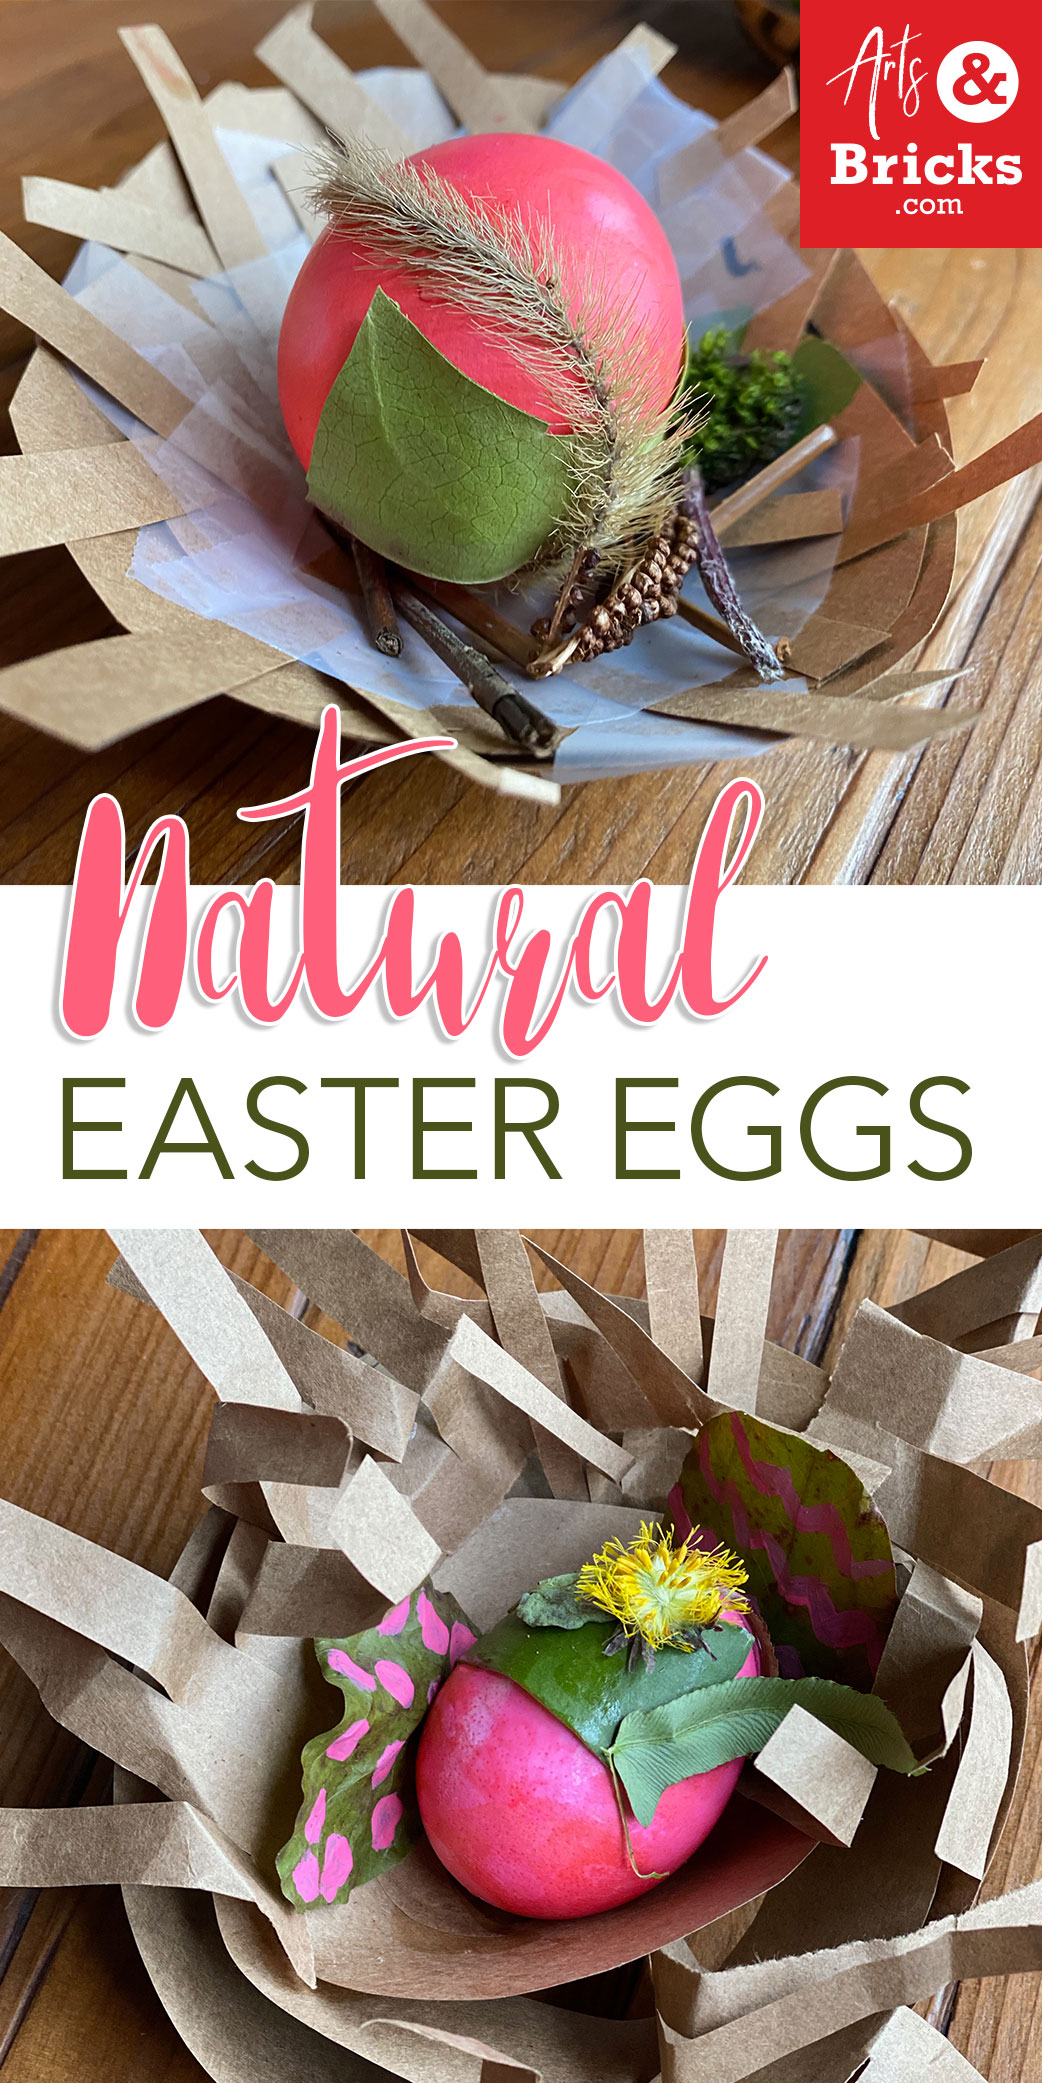 Blown-Out Naturally Decorated Easter Eggs -- dyed Eggs with glued found forest materials in paper bag nests.